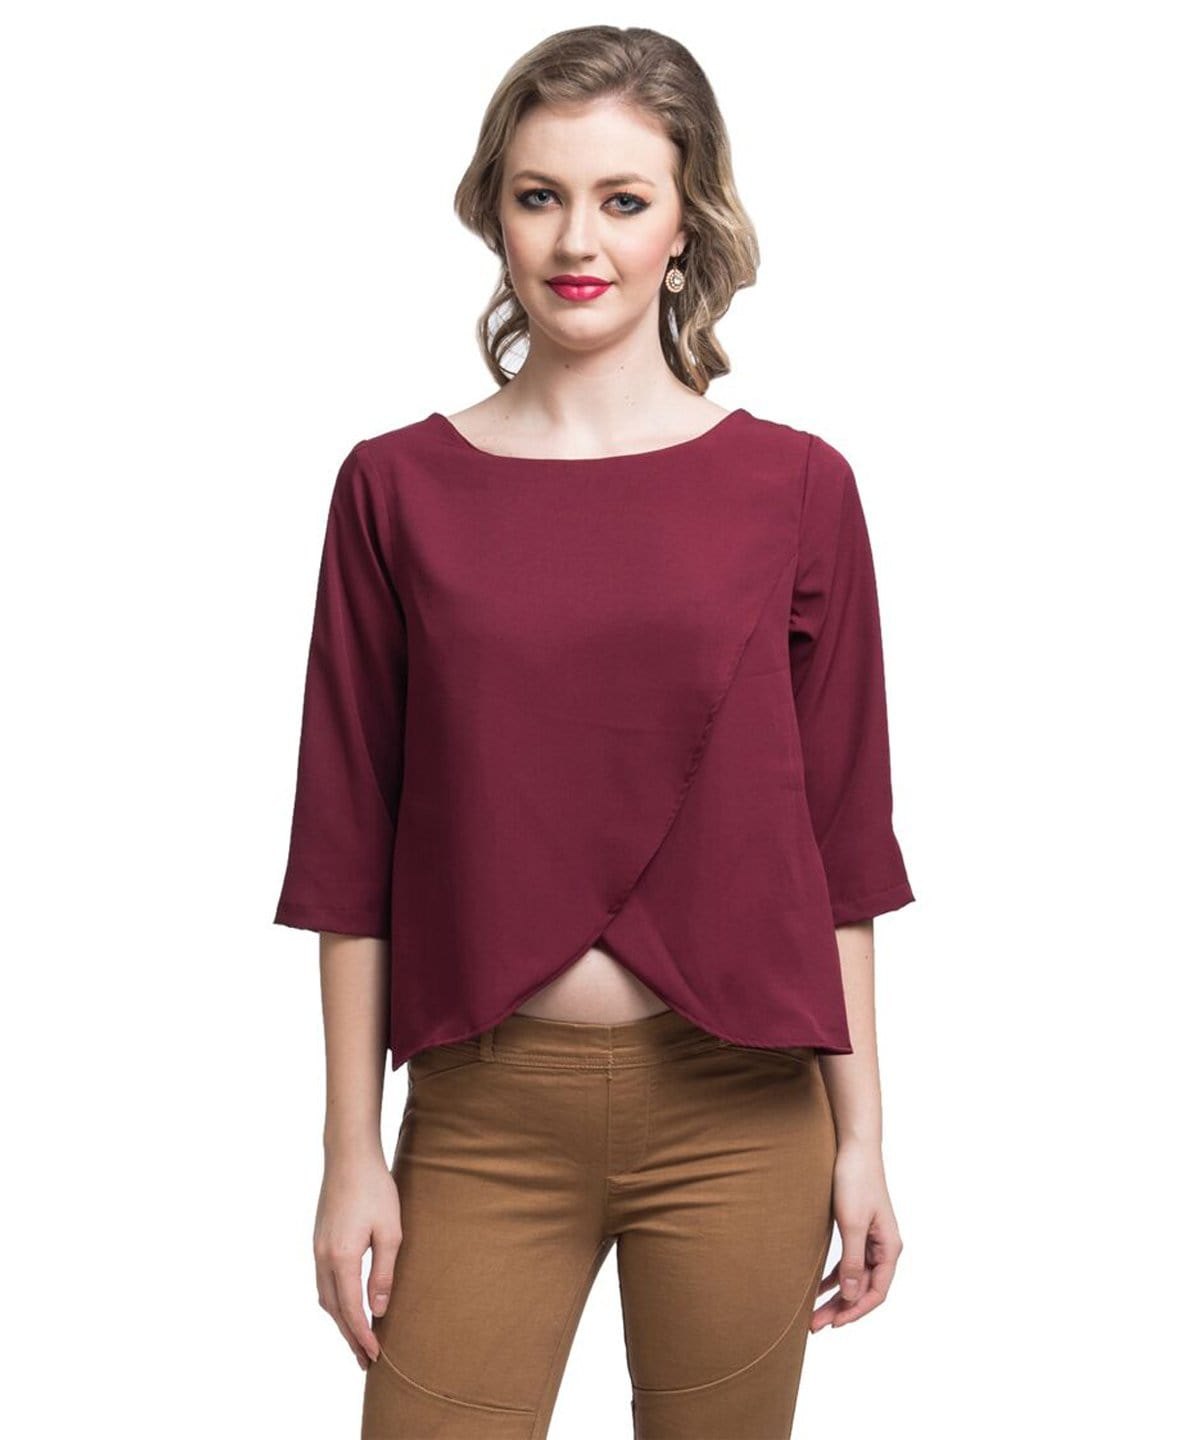 Solid Maroon Wrap Crepe Top. FLAT 20% OFF